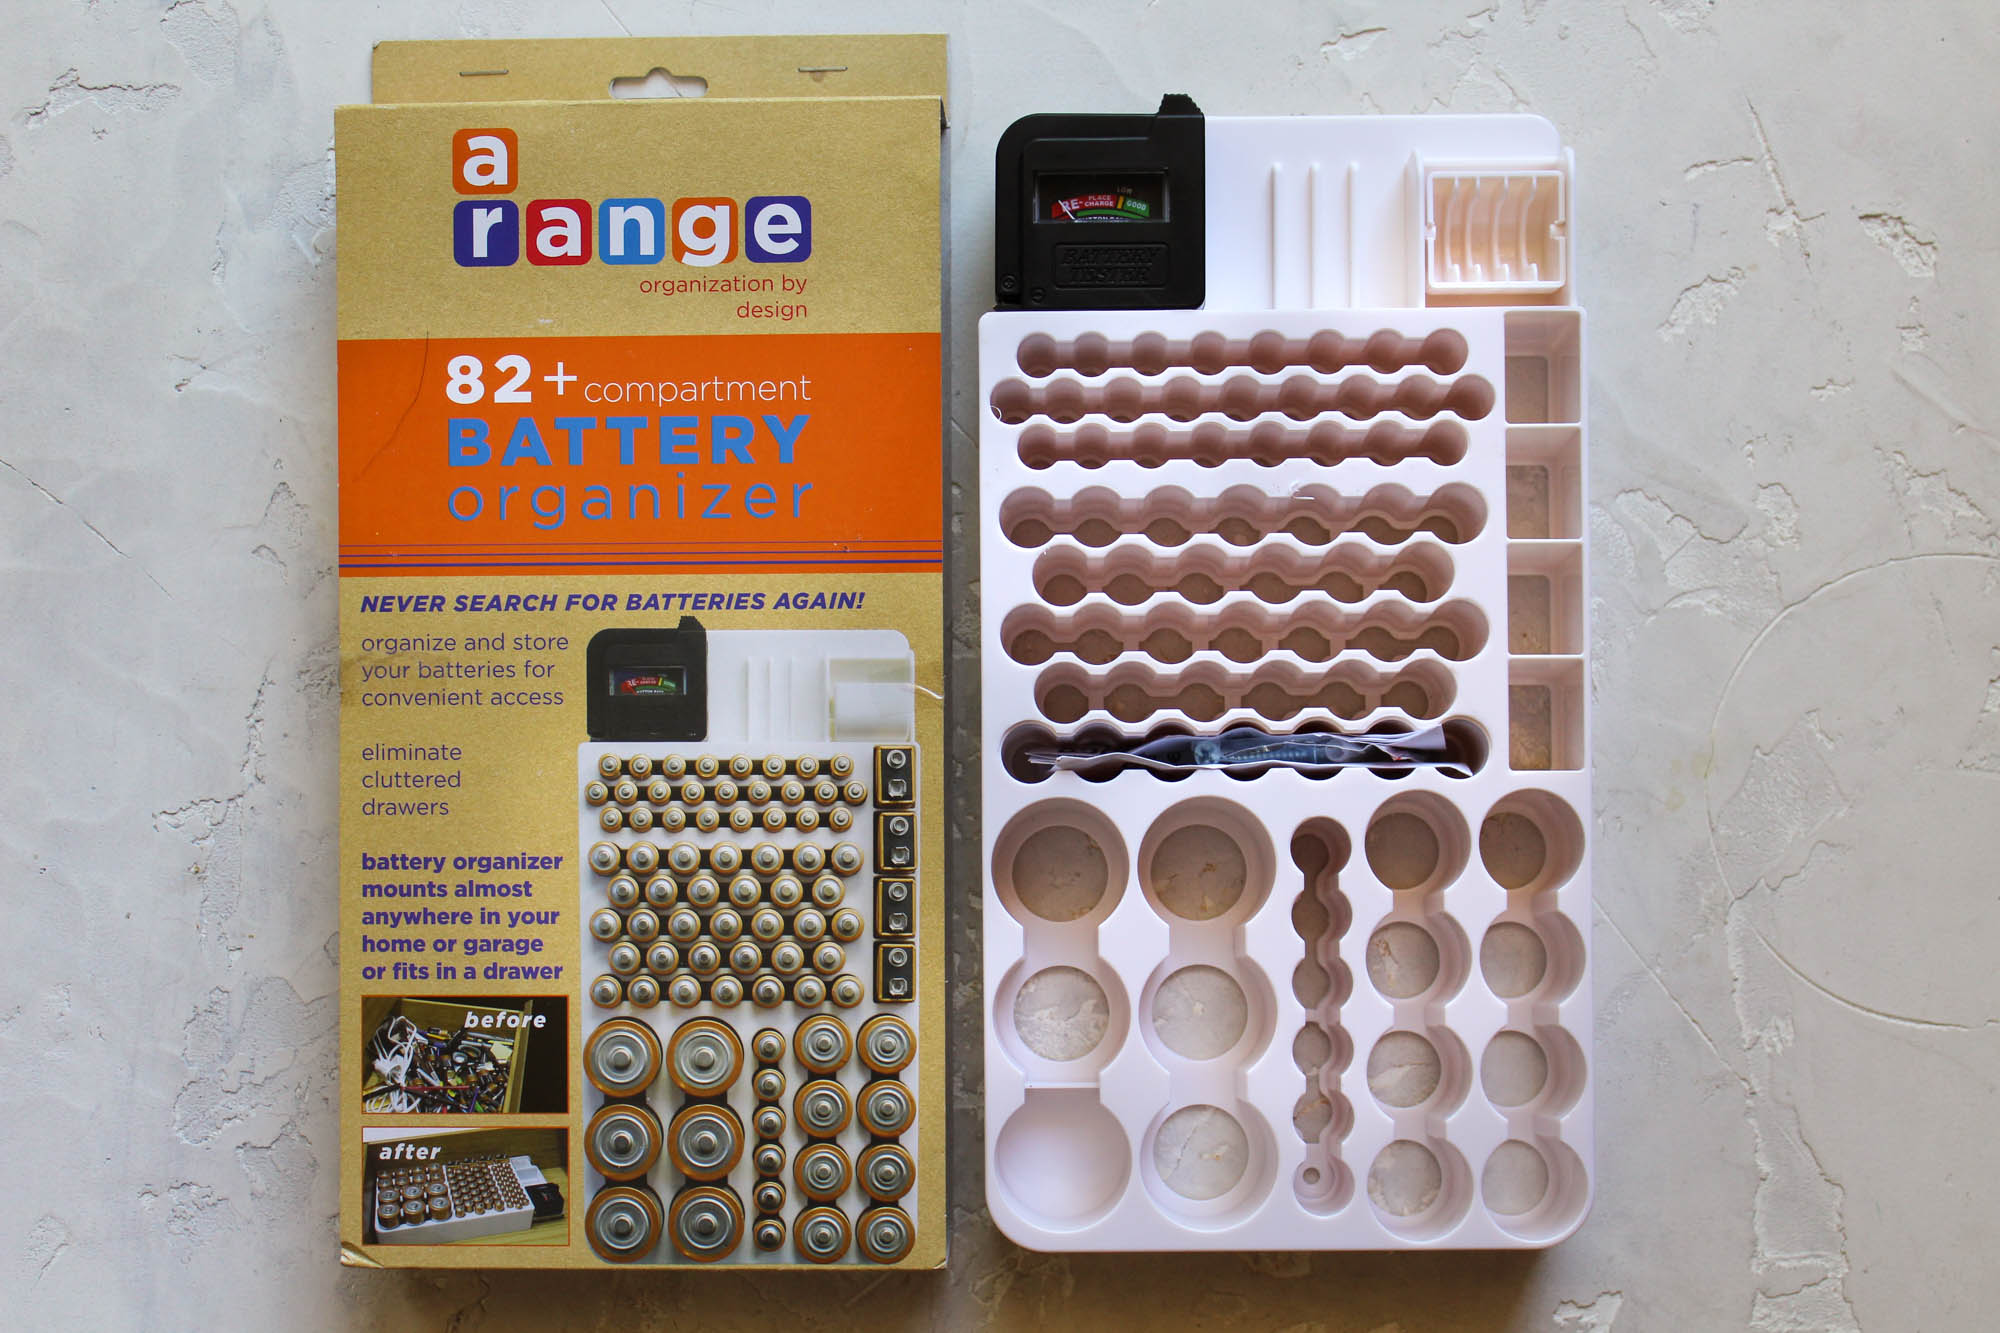 The best battery organizer w battery tester pandoras oem a range battery organizer and tester solutioingenieria Images